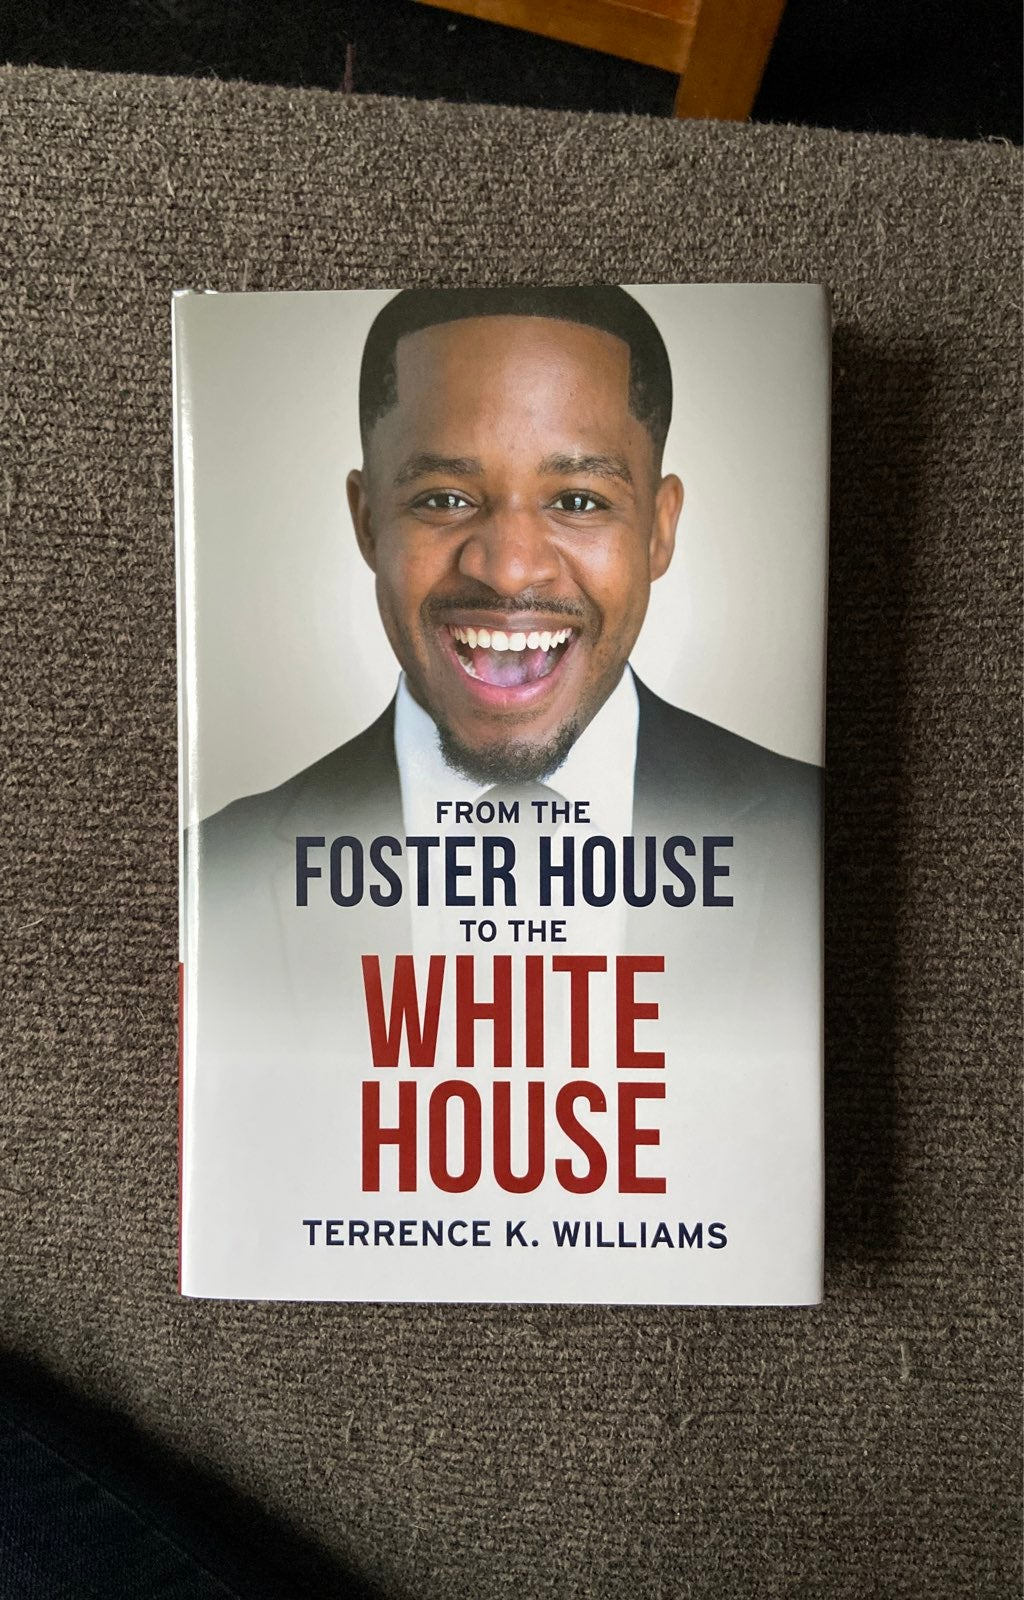 From the foster house to the white house